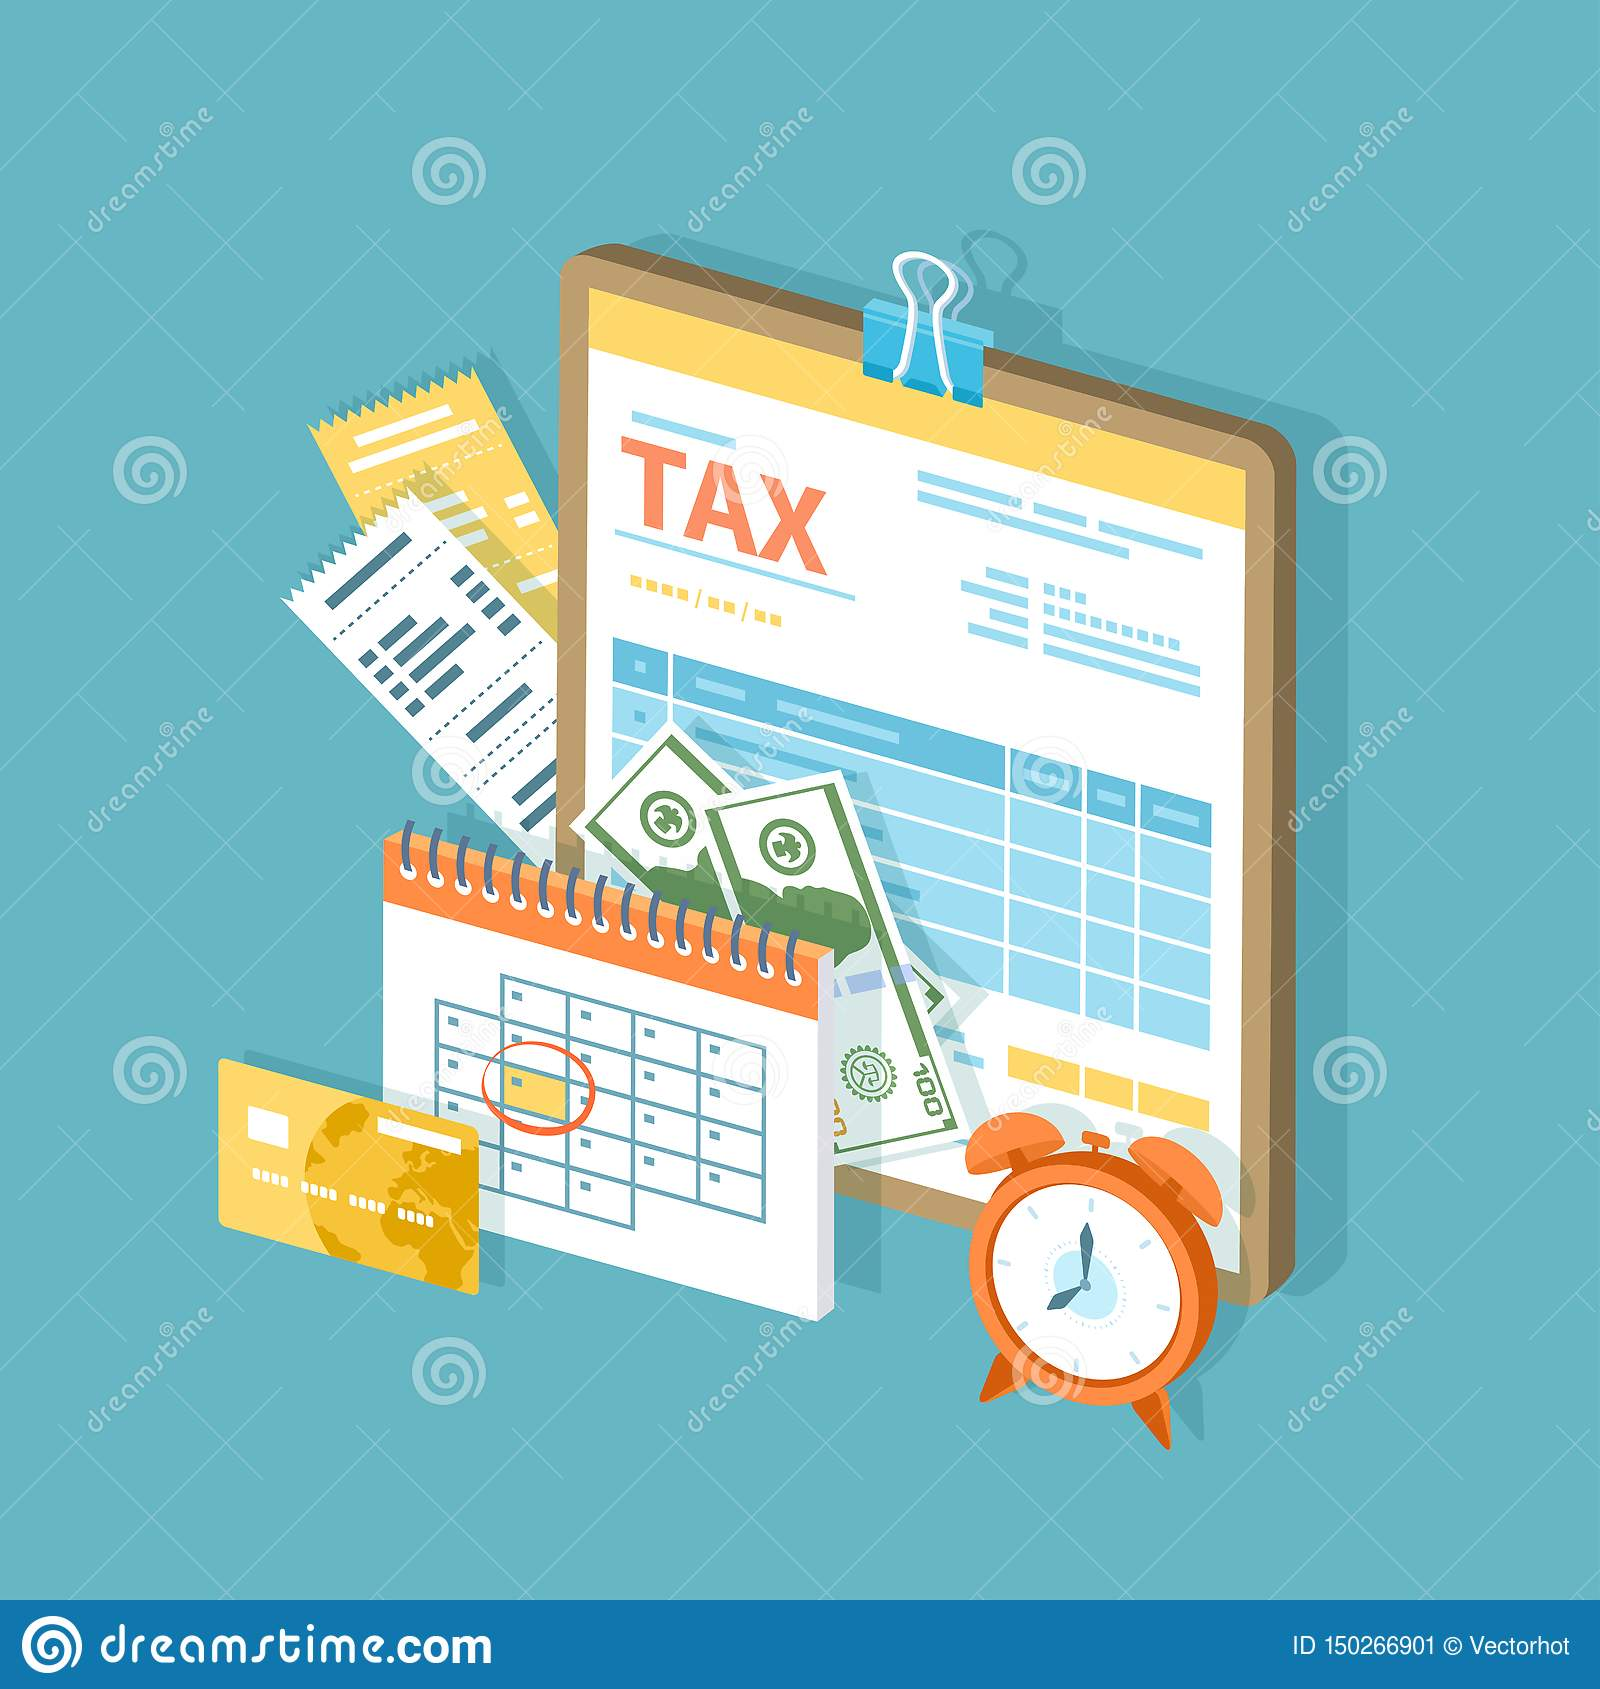 Tax Payment. Government, State Taxes. Payment Day. Tax Form On A Clipboard, Financial